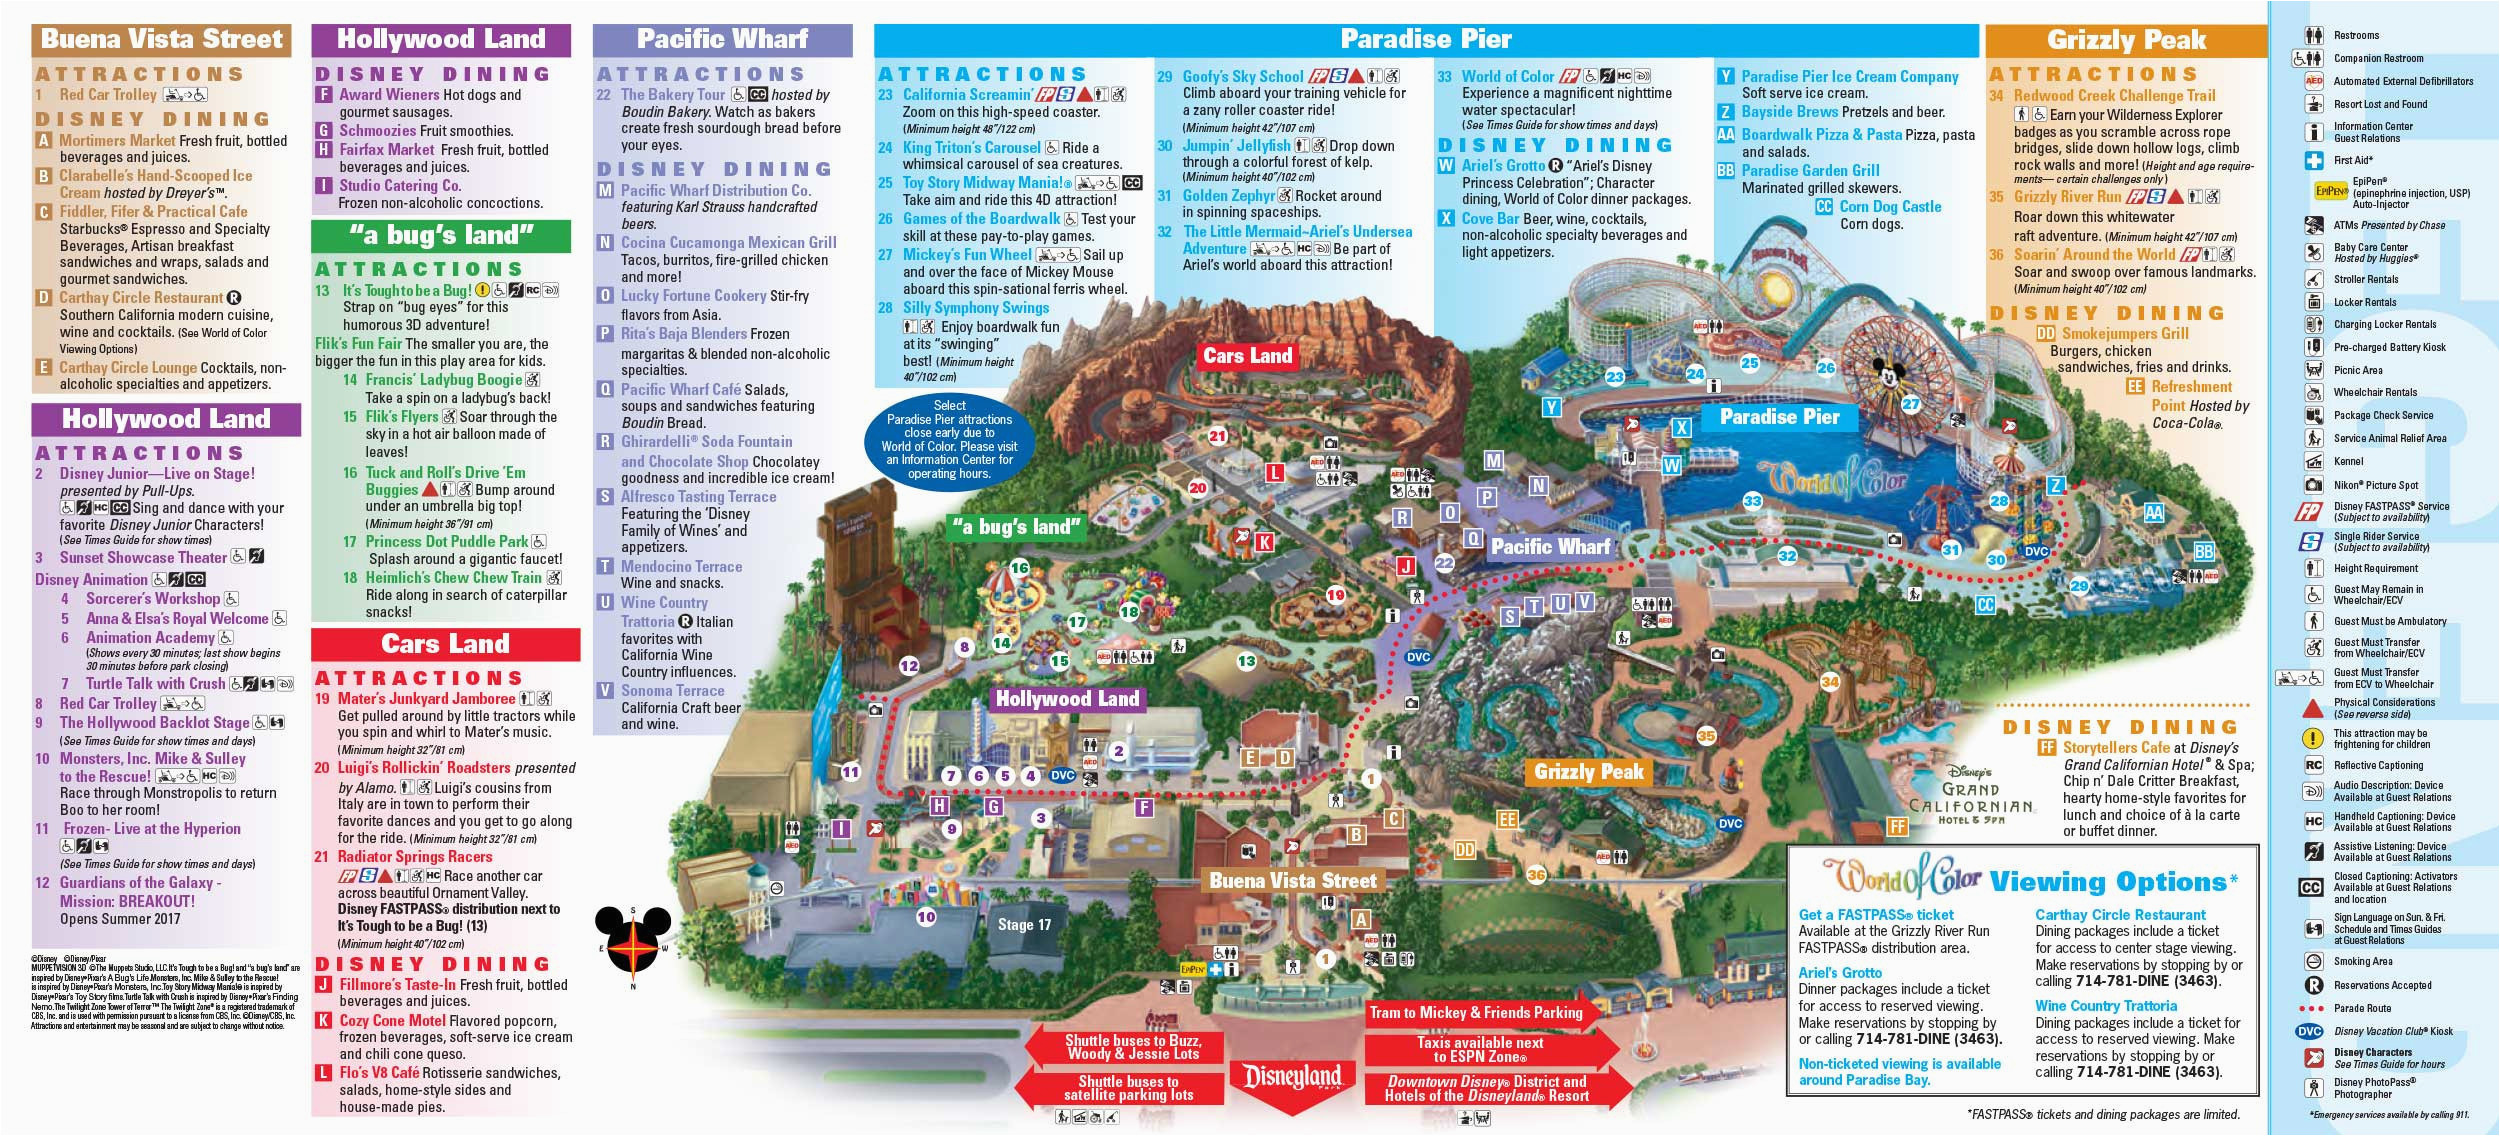 Theme Parks In California Map | secretmuseum on